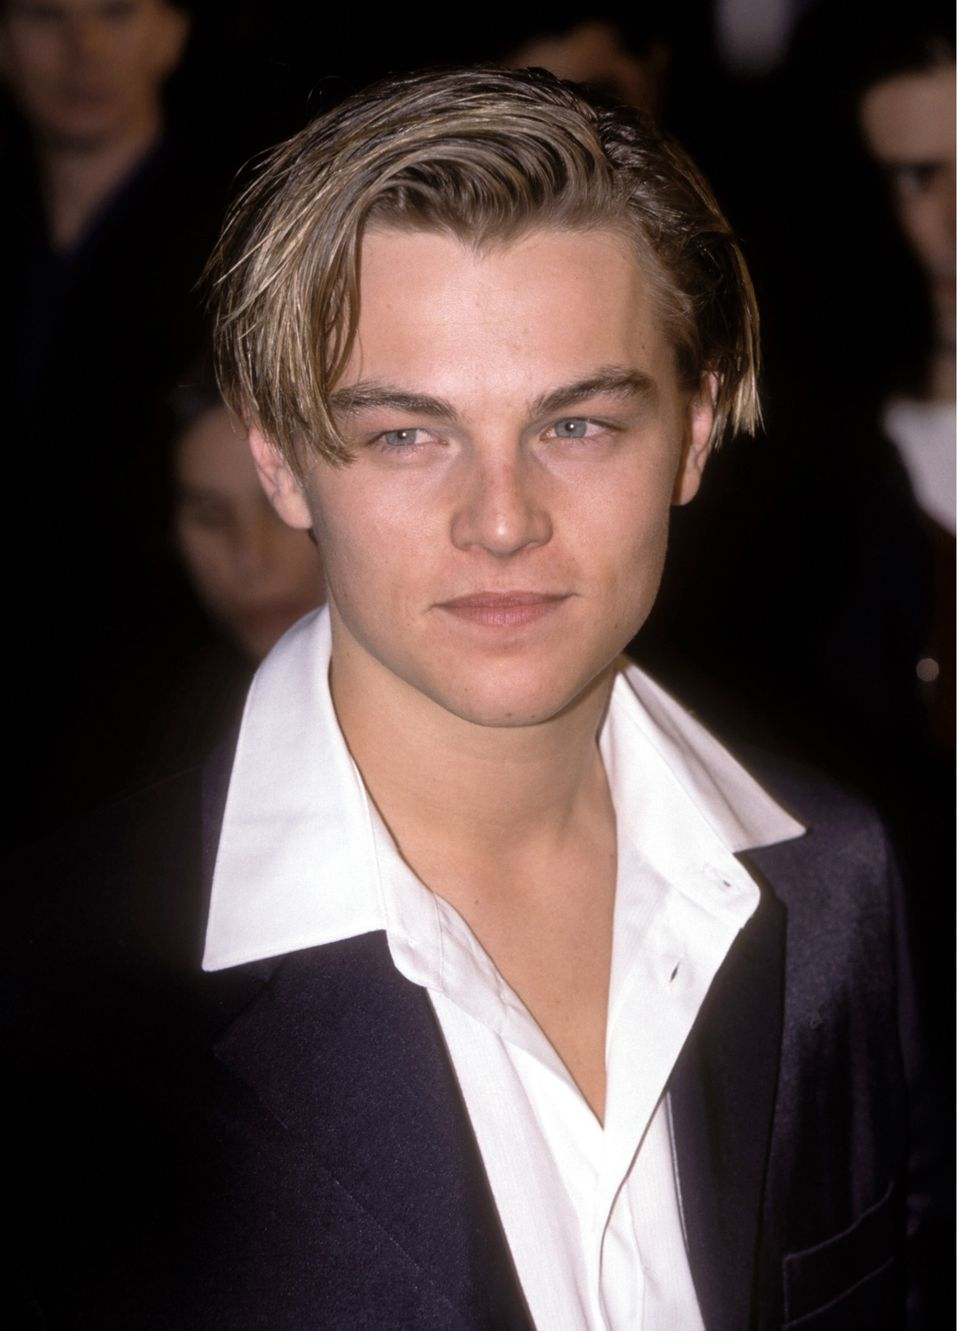 Here S Why Leonardo Dicaprio Has Never Had A Bad Hair Day Huffpost Life